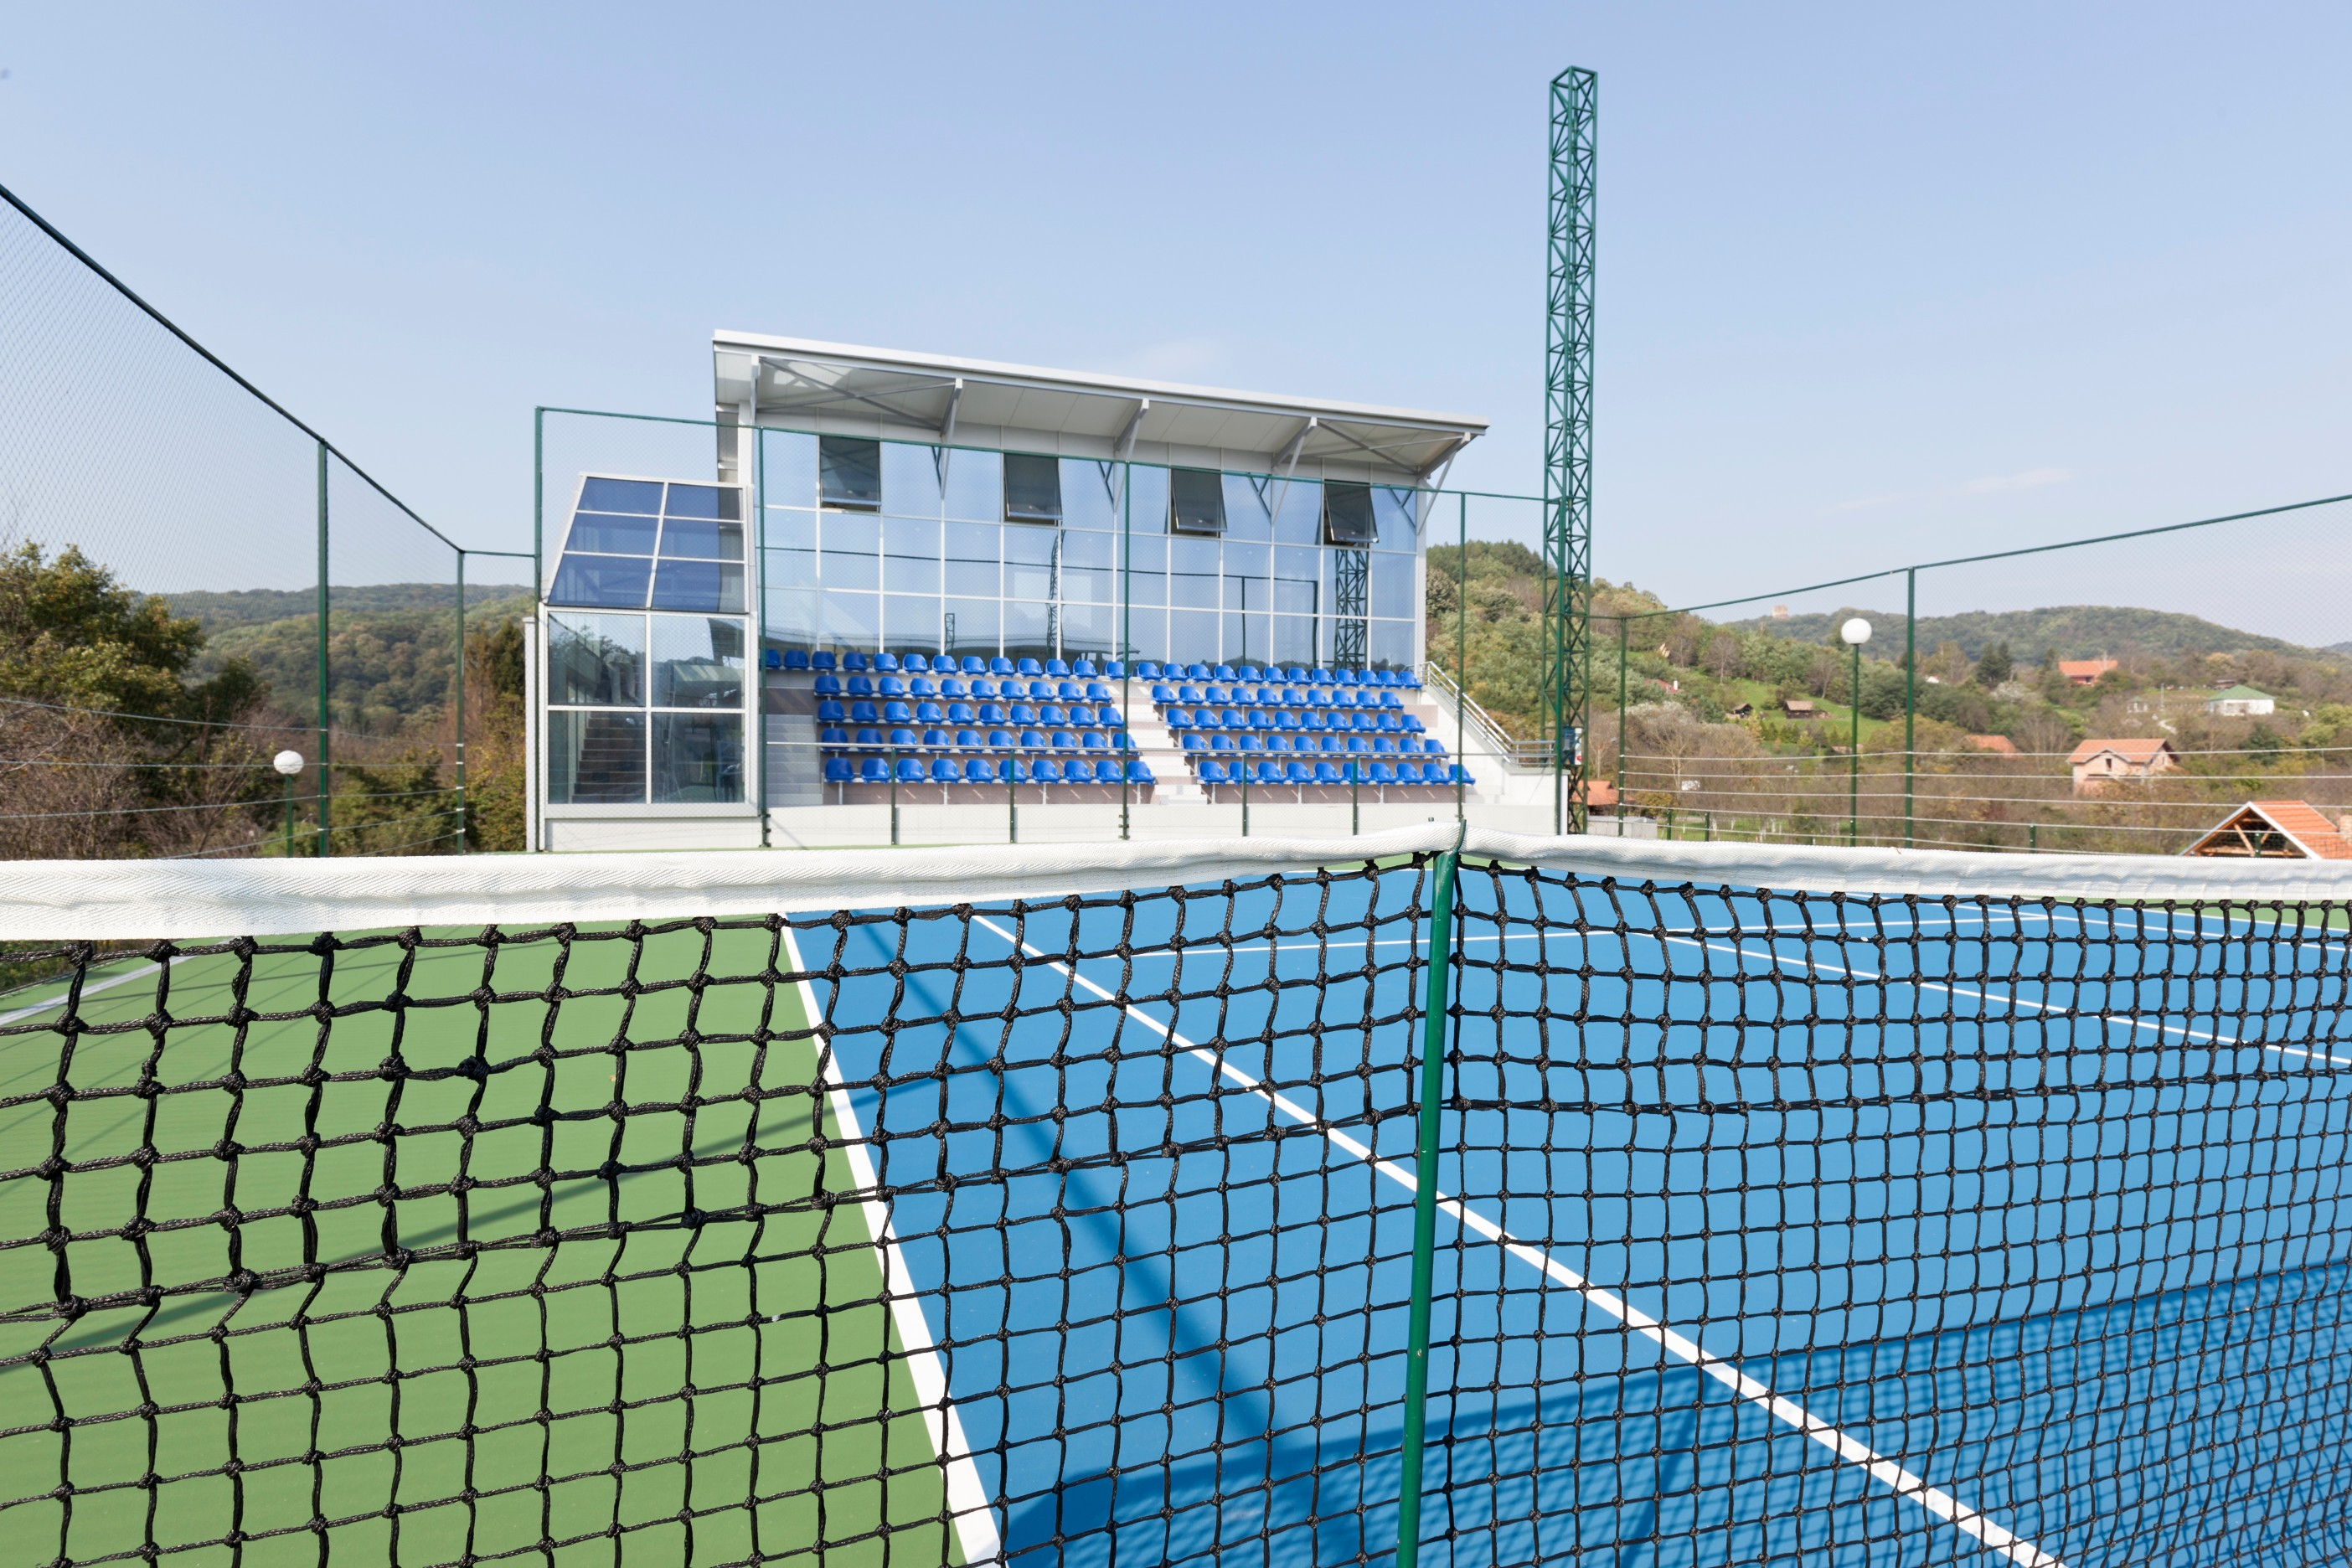 ETC sports surfaces installs many types of tennis courts, plus fencing and other finishing equipment